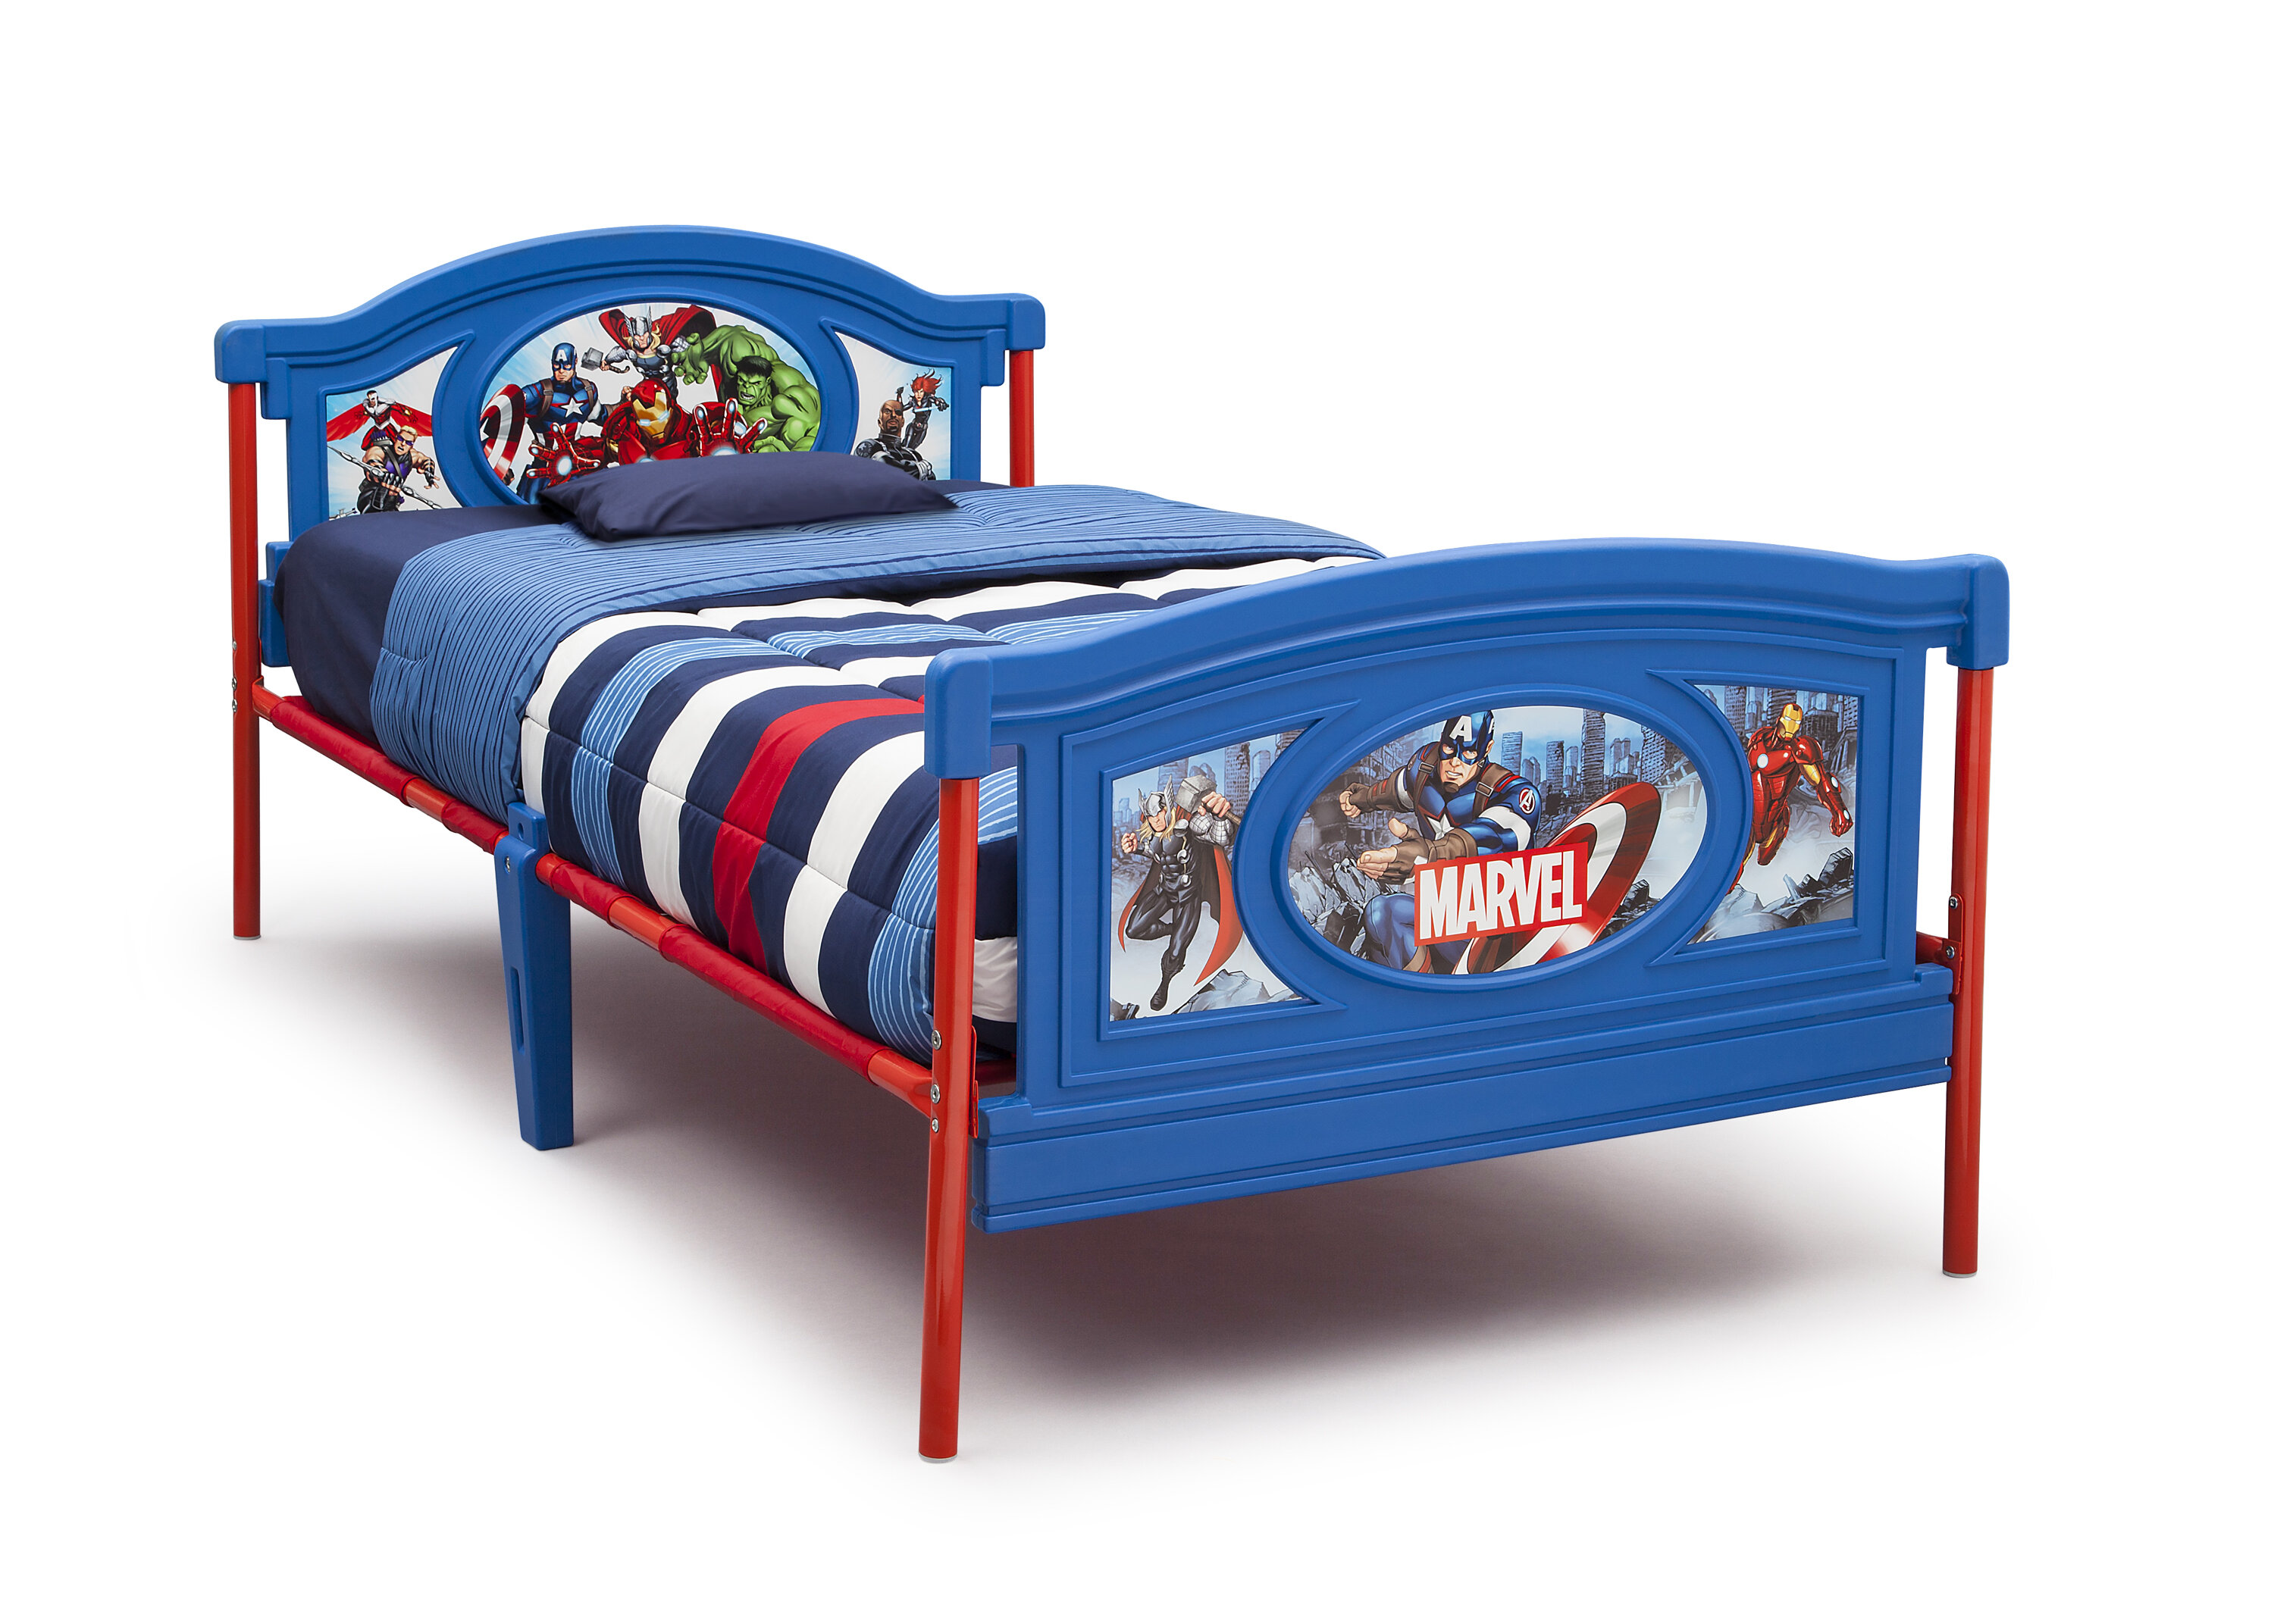 hi avengers children upholstered bed roomshot bedroom chair delta set room products twin res view